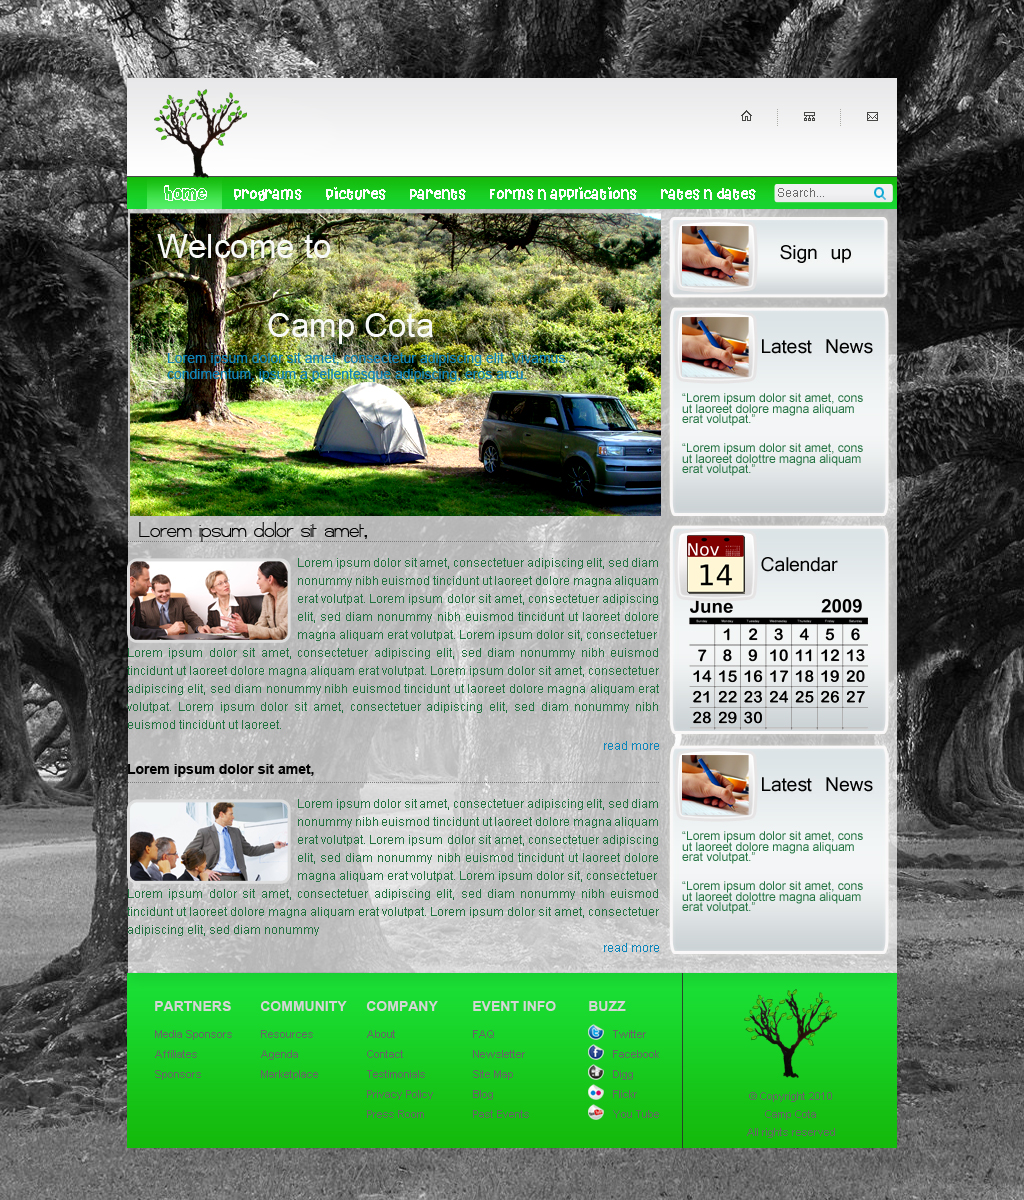 Web Page Design by Geniye - Entry No. 2 in the Web Page Design Contest Camp COTA - Clean, Crisp Design Needed.